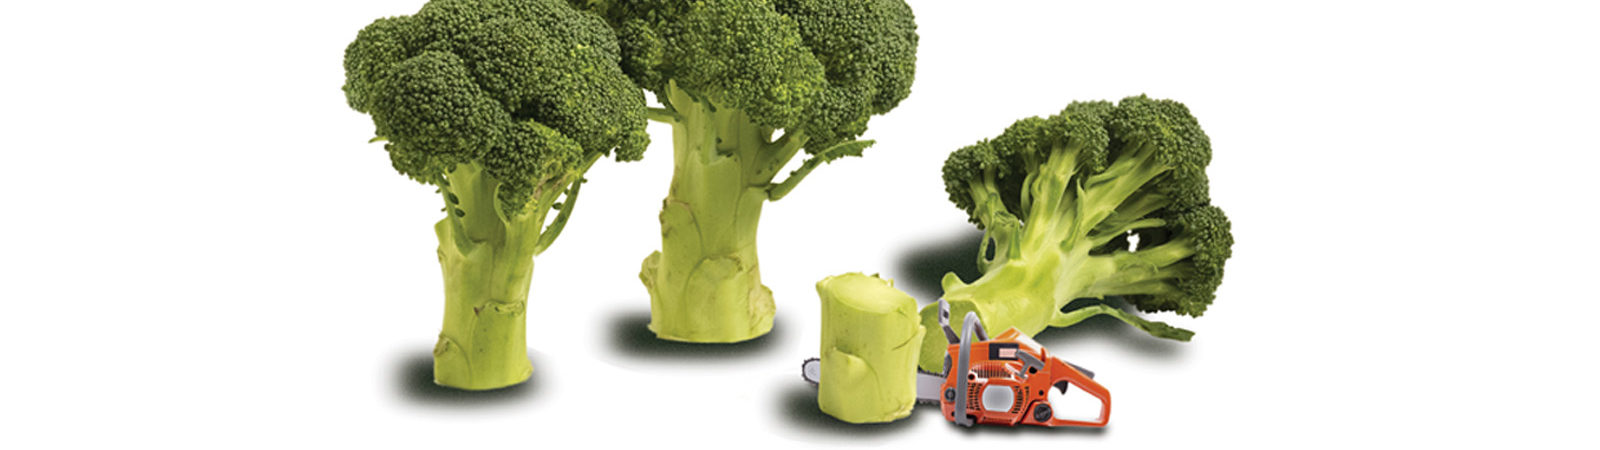 Image of broccoli standing like trees with a chainsaw